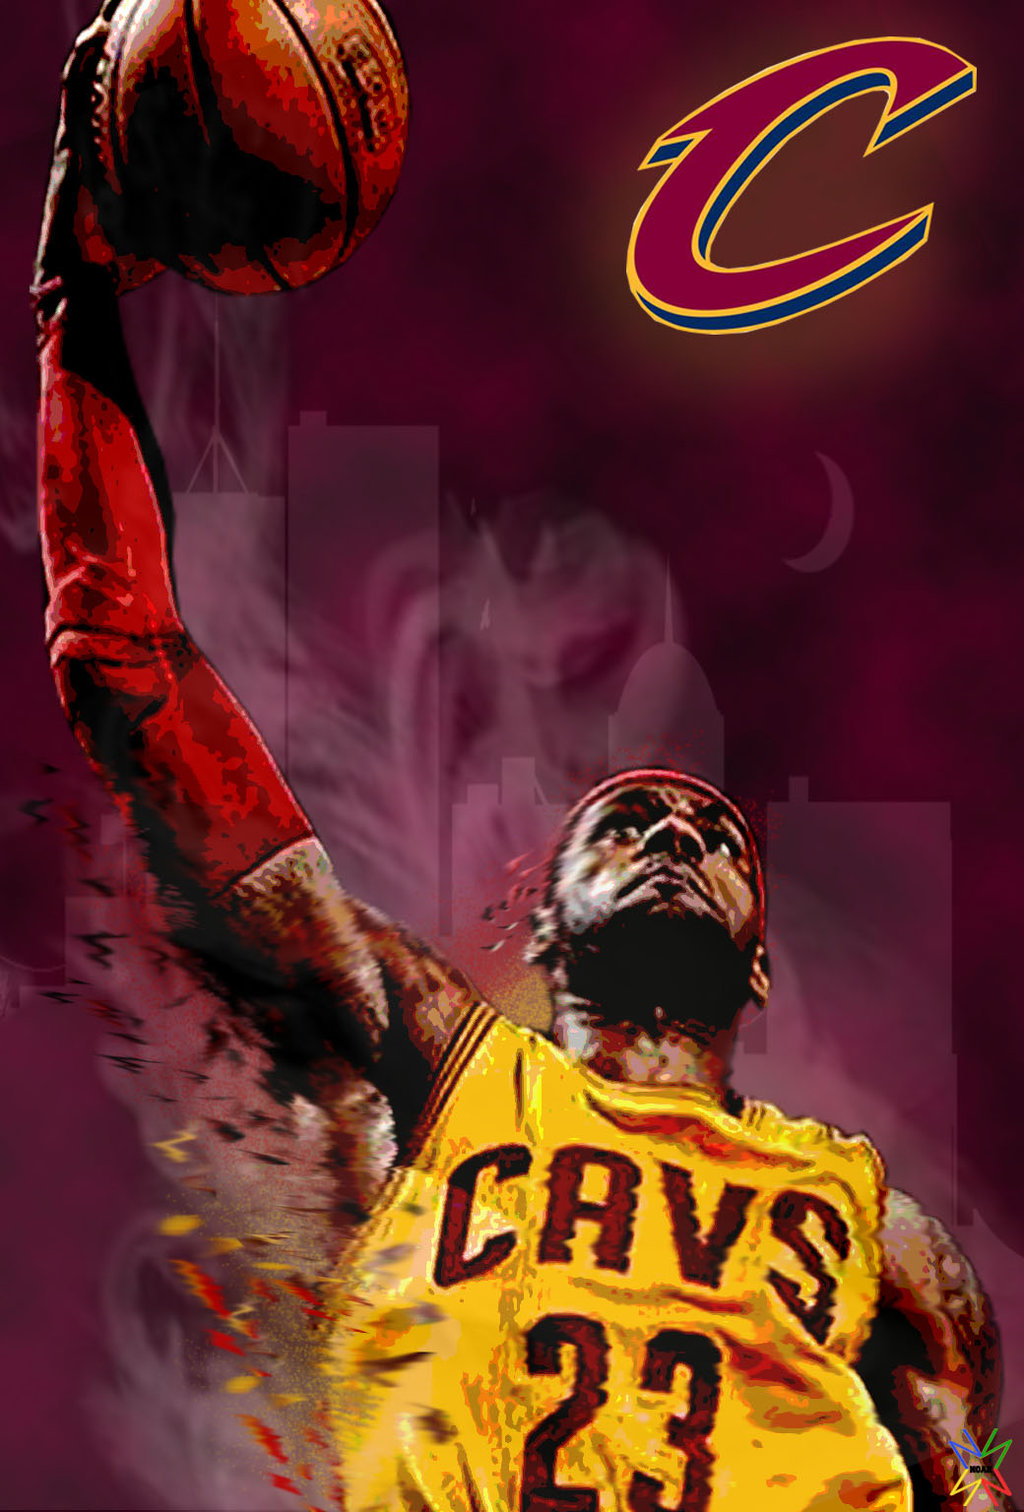 LeBron James Cavs Wallpaper 2015 Good Galleries 1024x1512